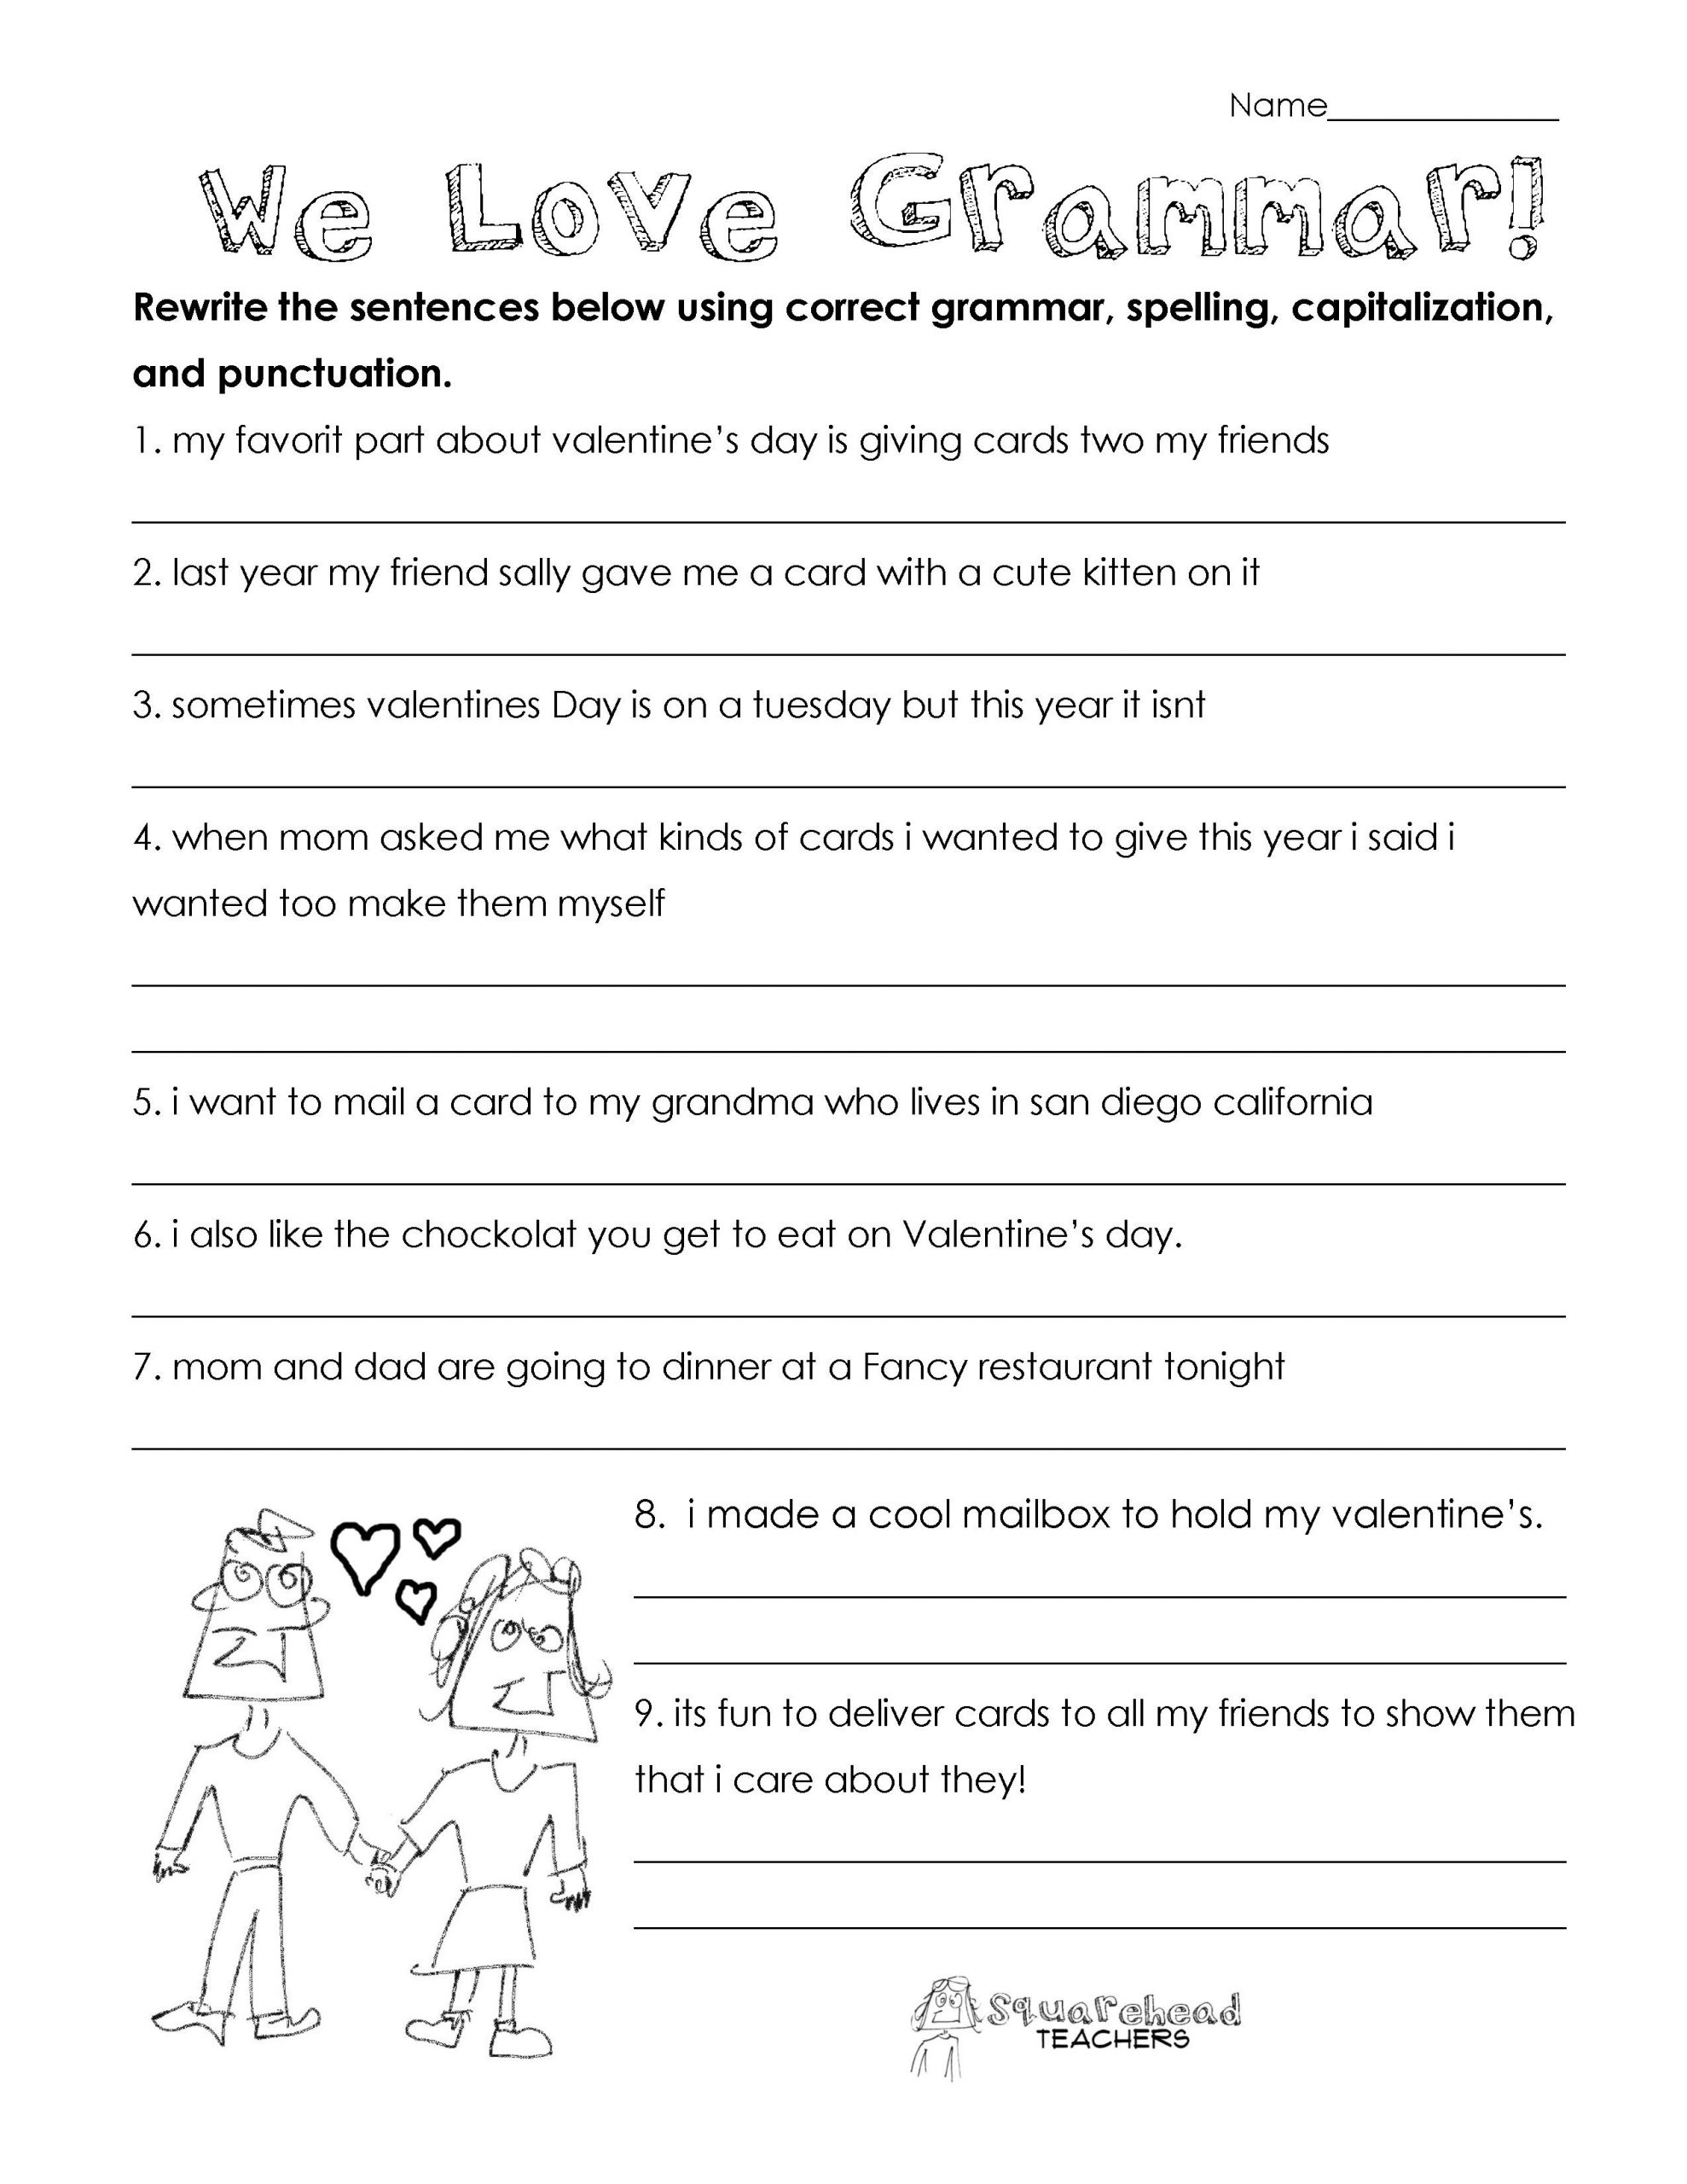 Valentine s Day Grammar free worksheet for 3rd grade and up